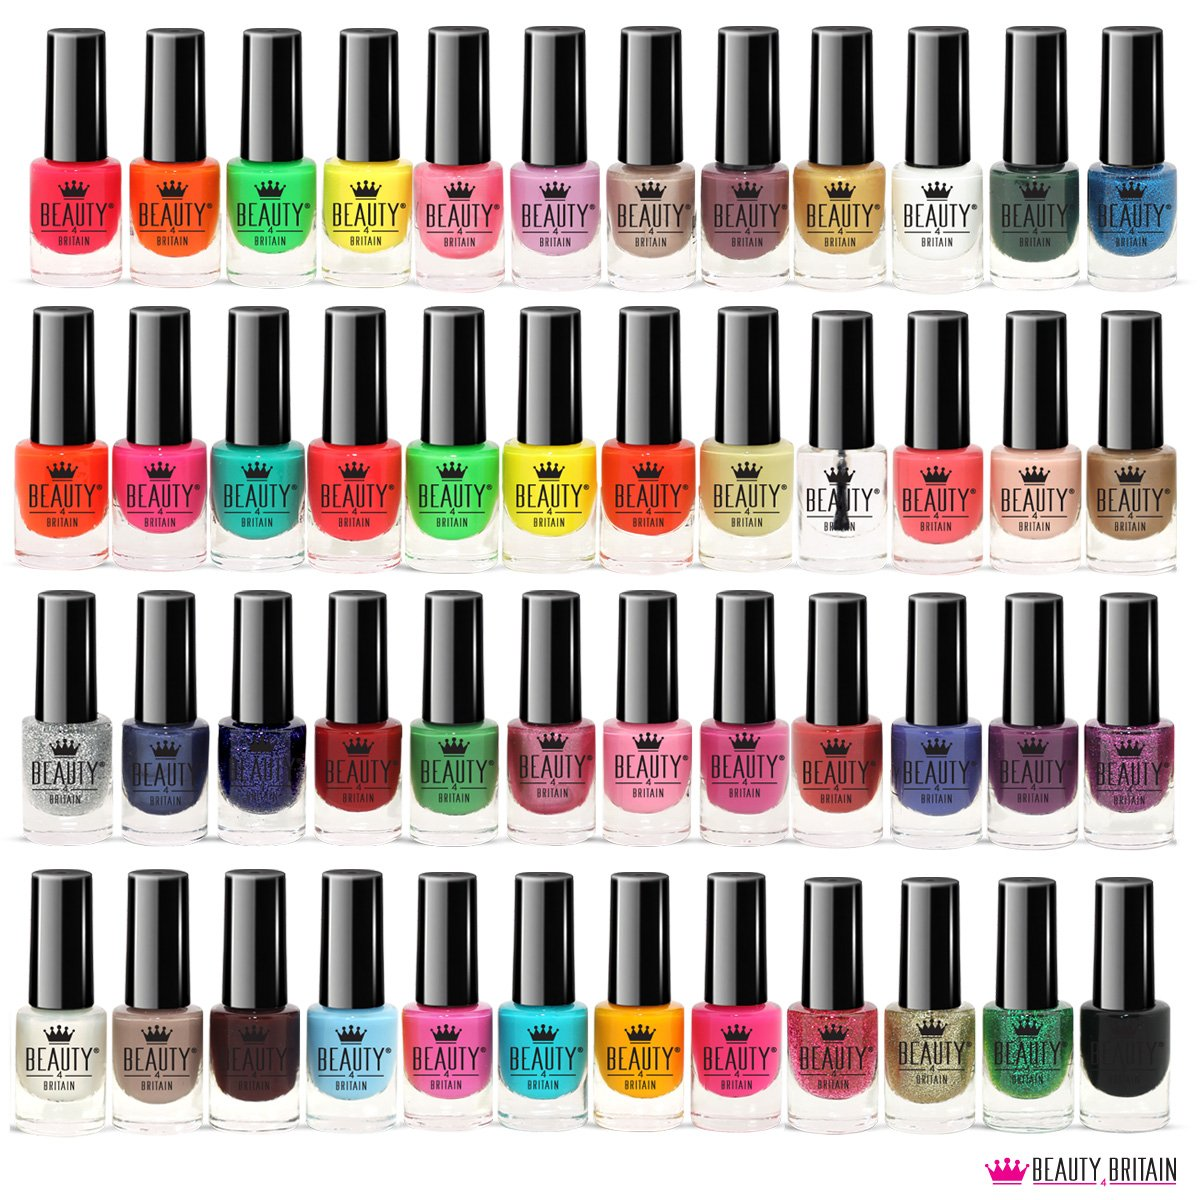 48 x NAIL POLISH VARNISH SET 48 DIFFERENT BRIGHT MODERN COLOURS UK Beauty4Britain